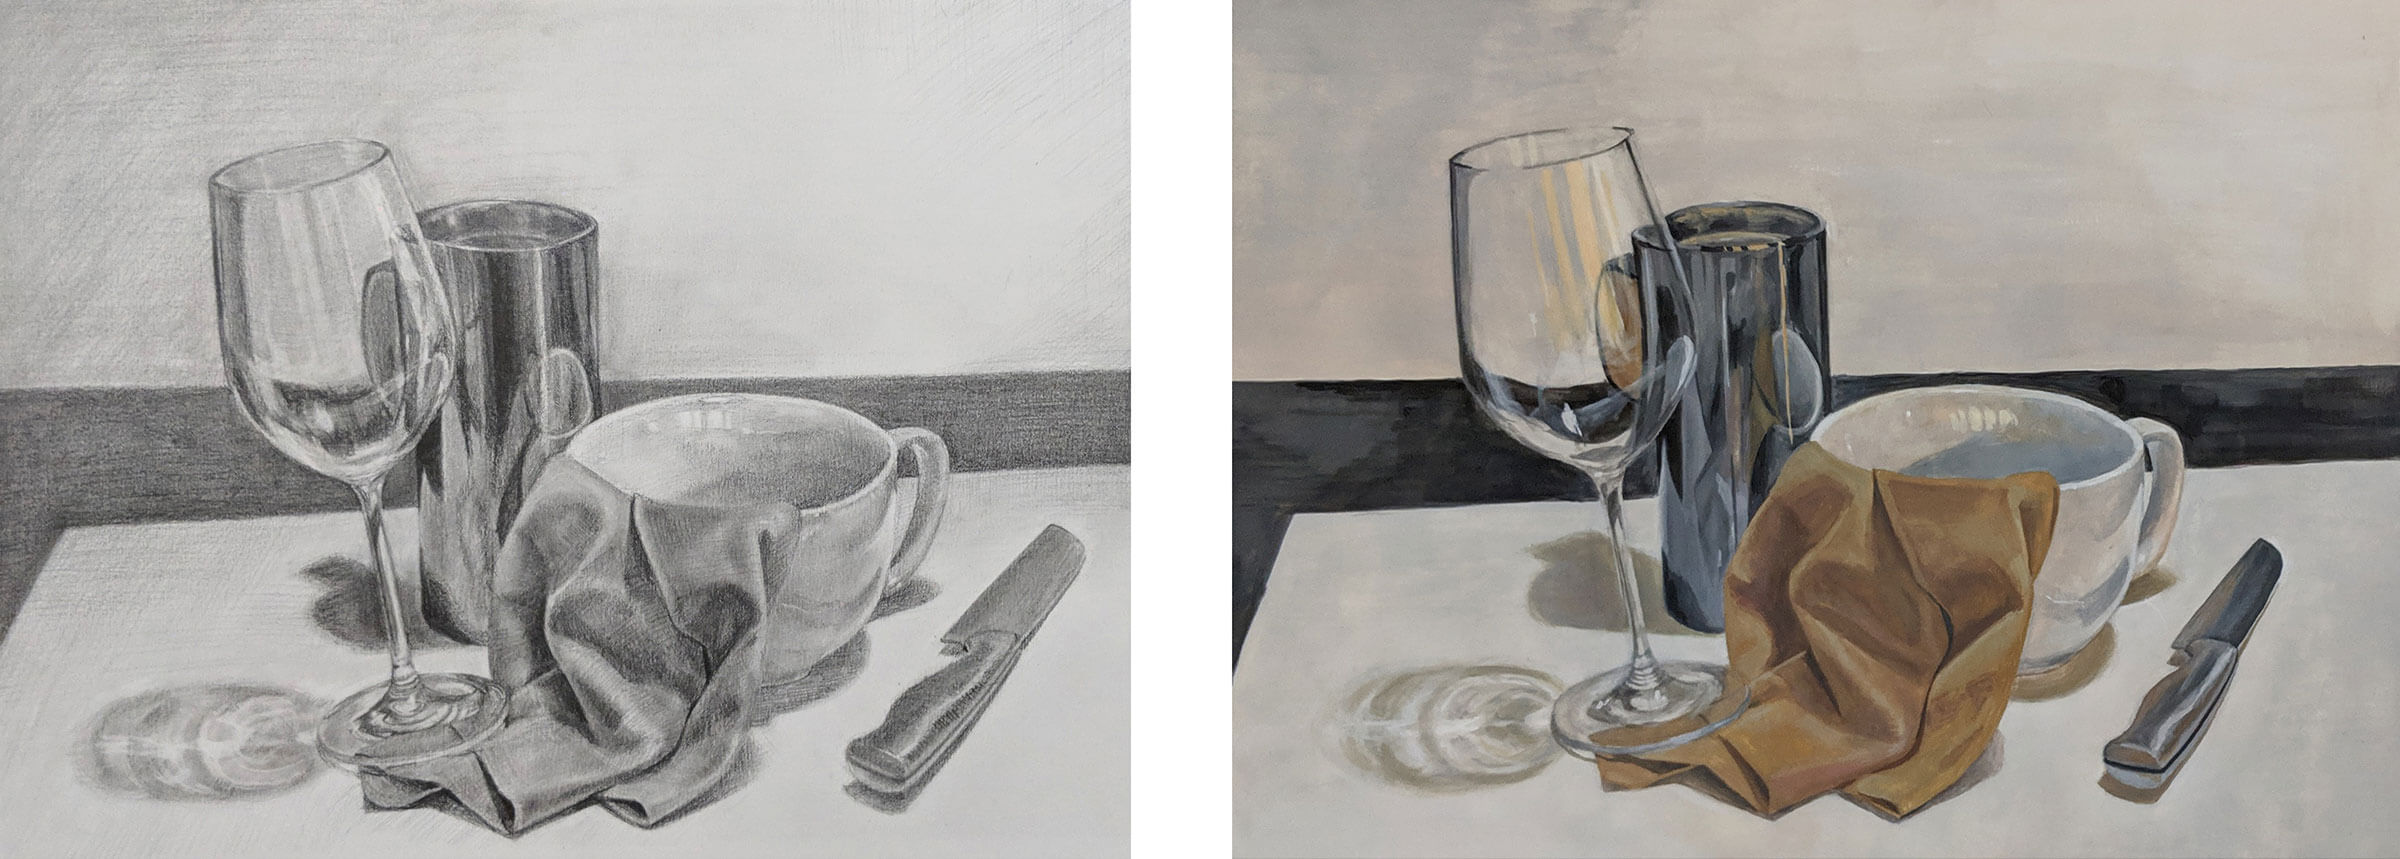 Still-life with wine glass, mugs, knife, and napkin